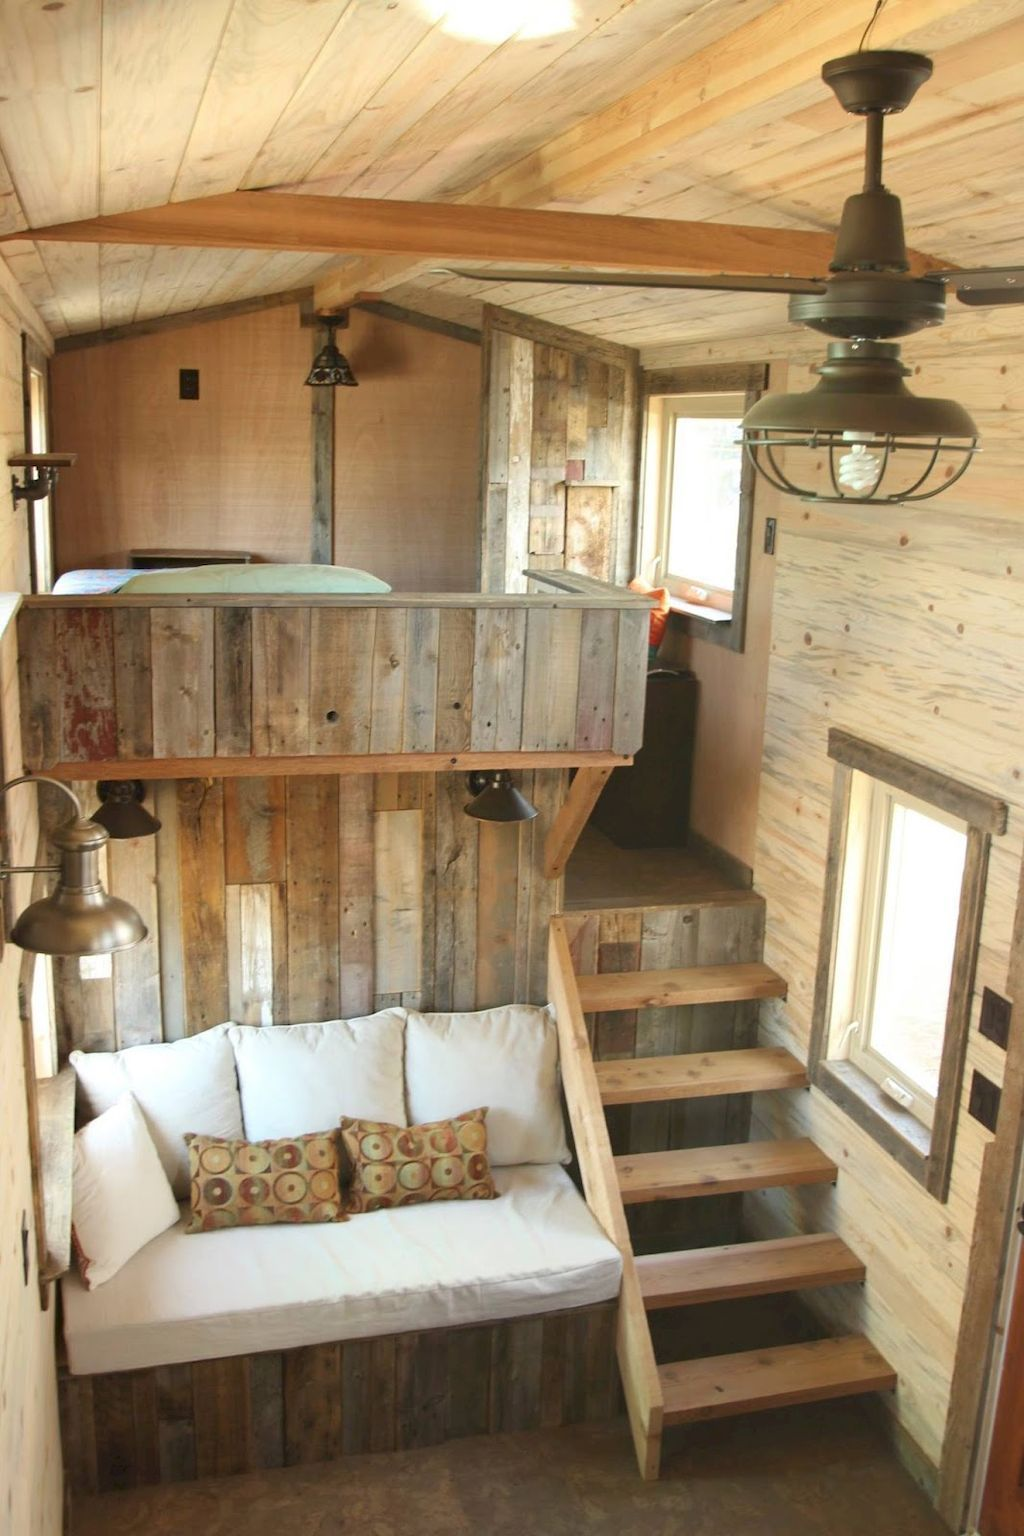 65 Cute Tiny House Ideas Organization Tips 64 Tiny